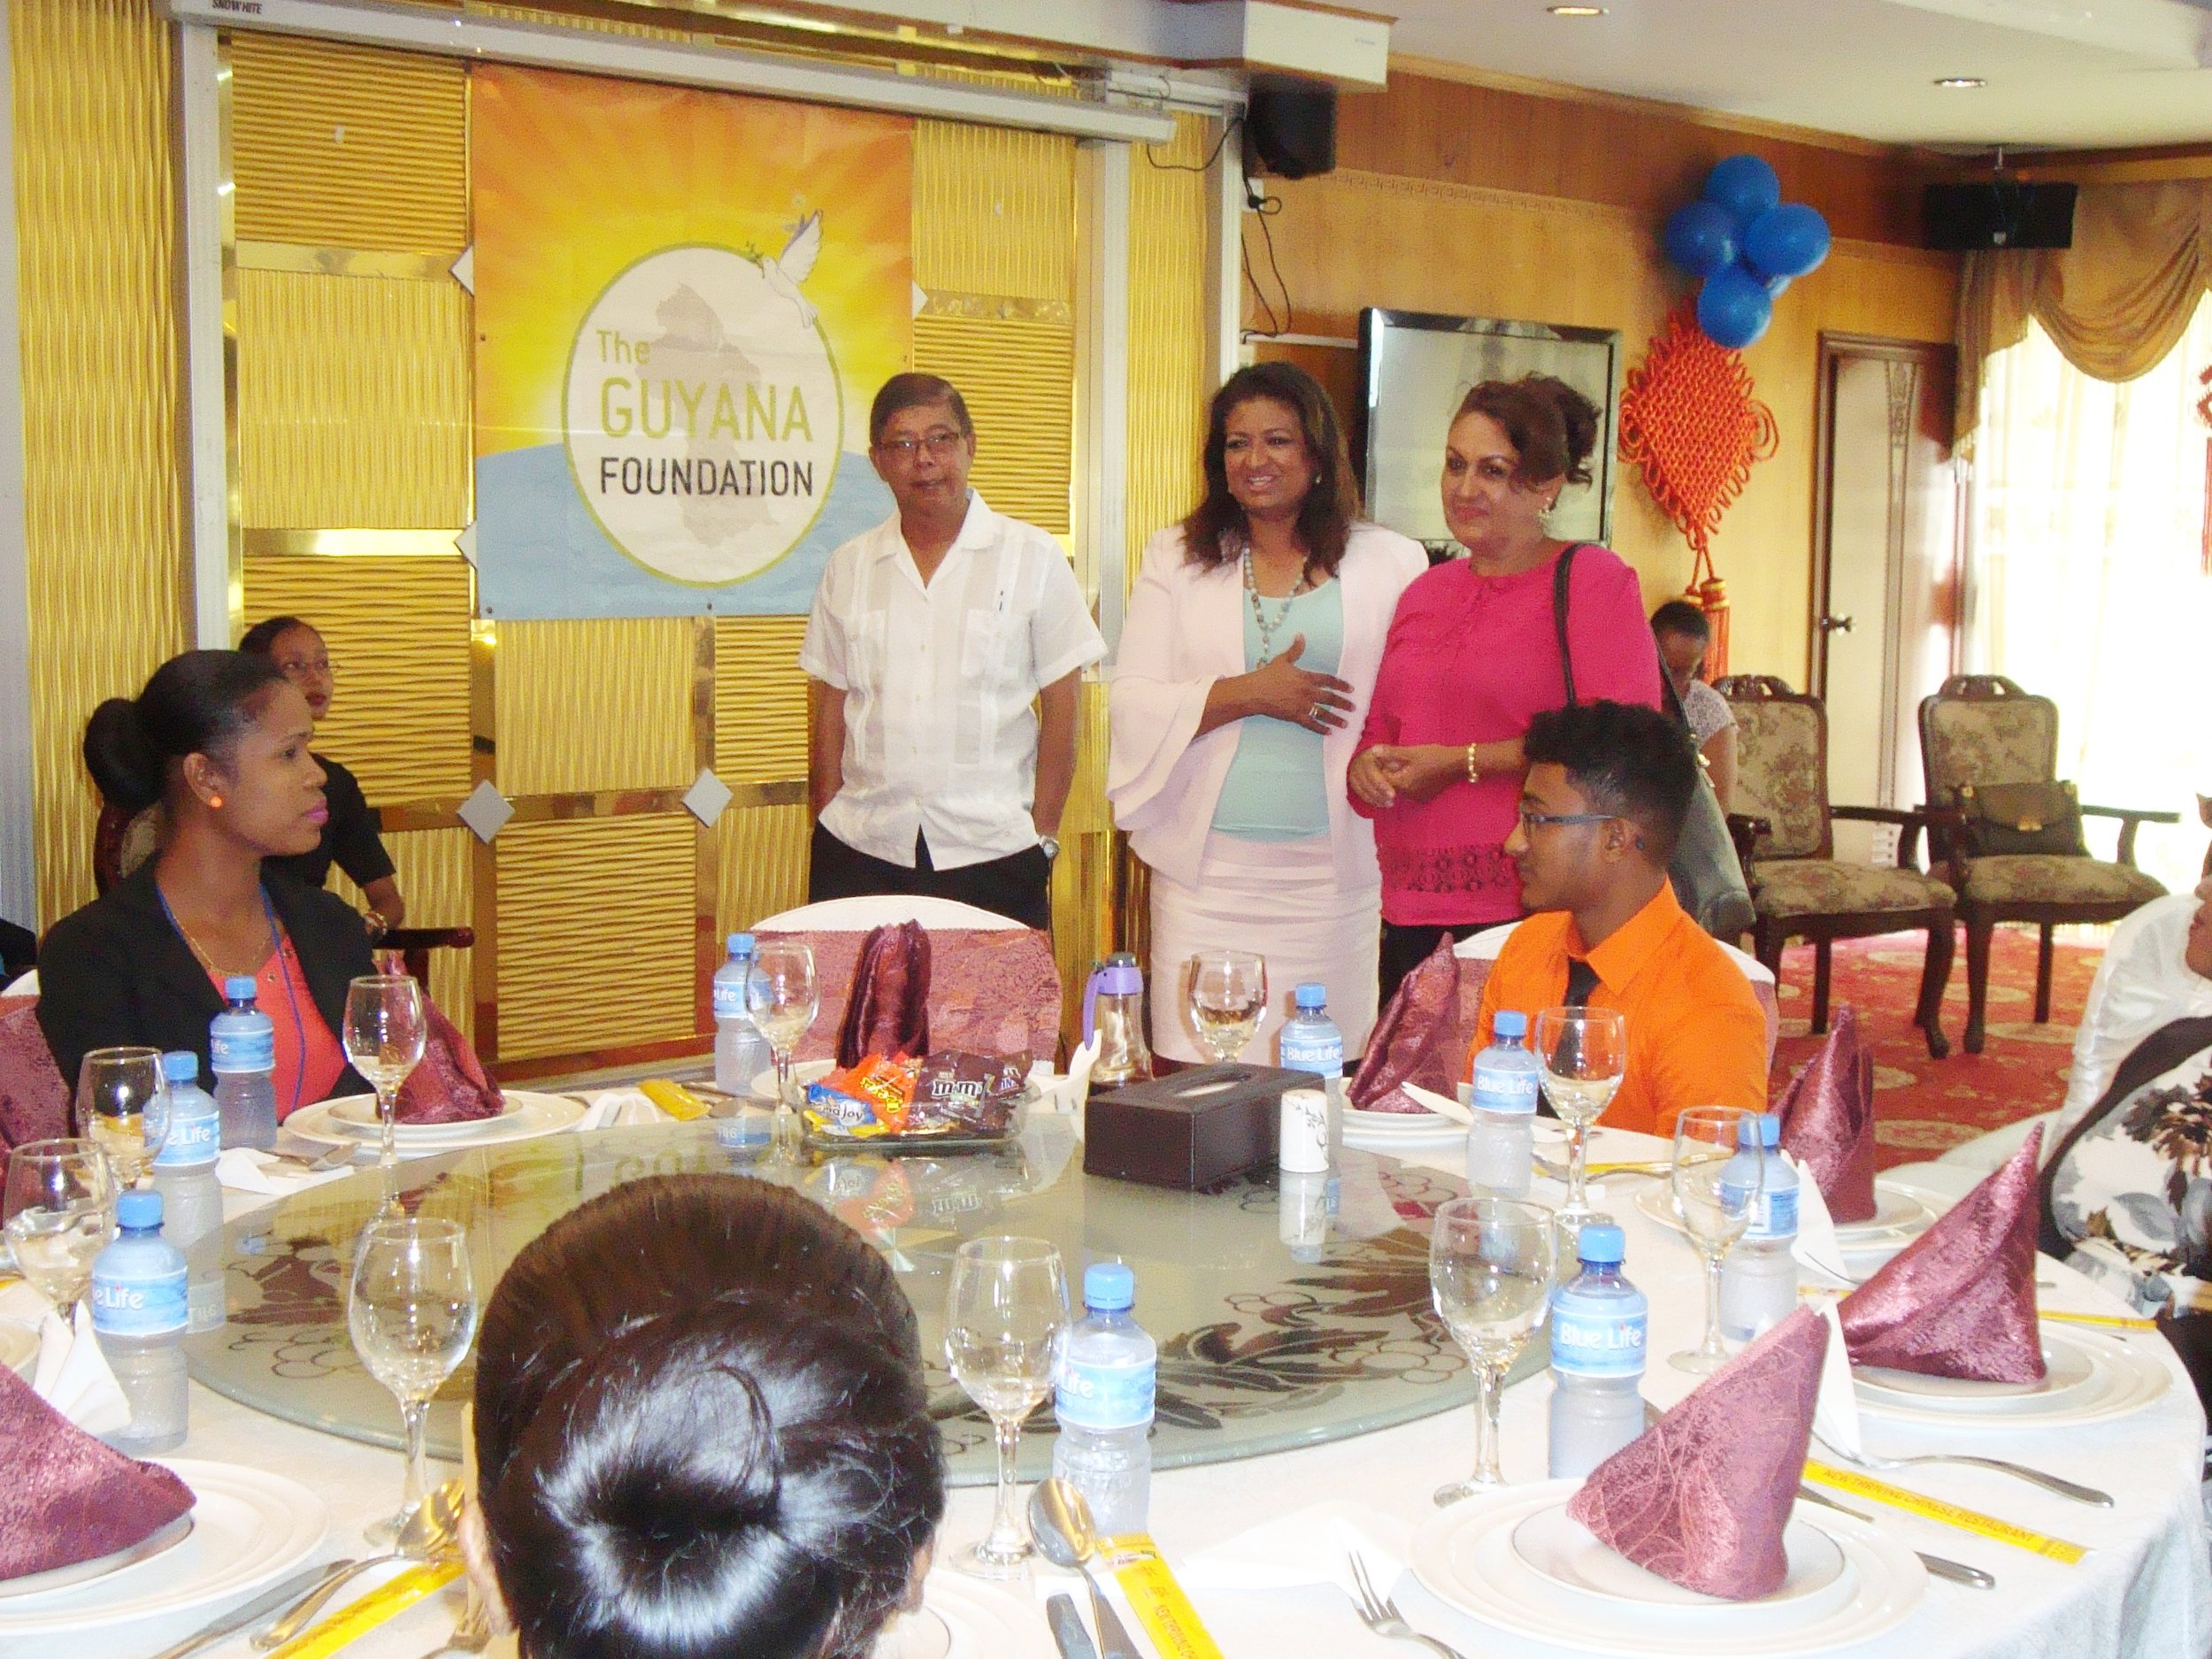 Press Conference/Luncheon: Ms. Singh-Bodden introducing Whanita Phillips of Santa Rosa, Moruca to the Sunrise Center Team.